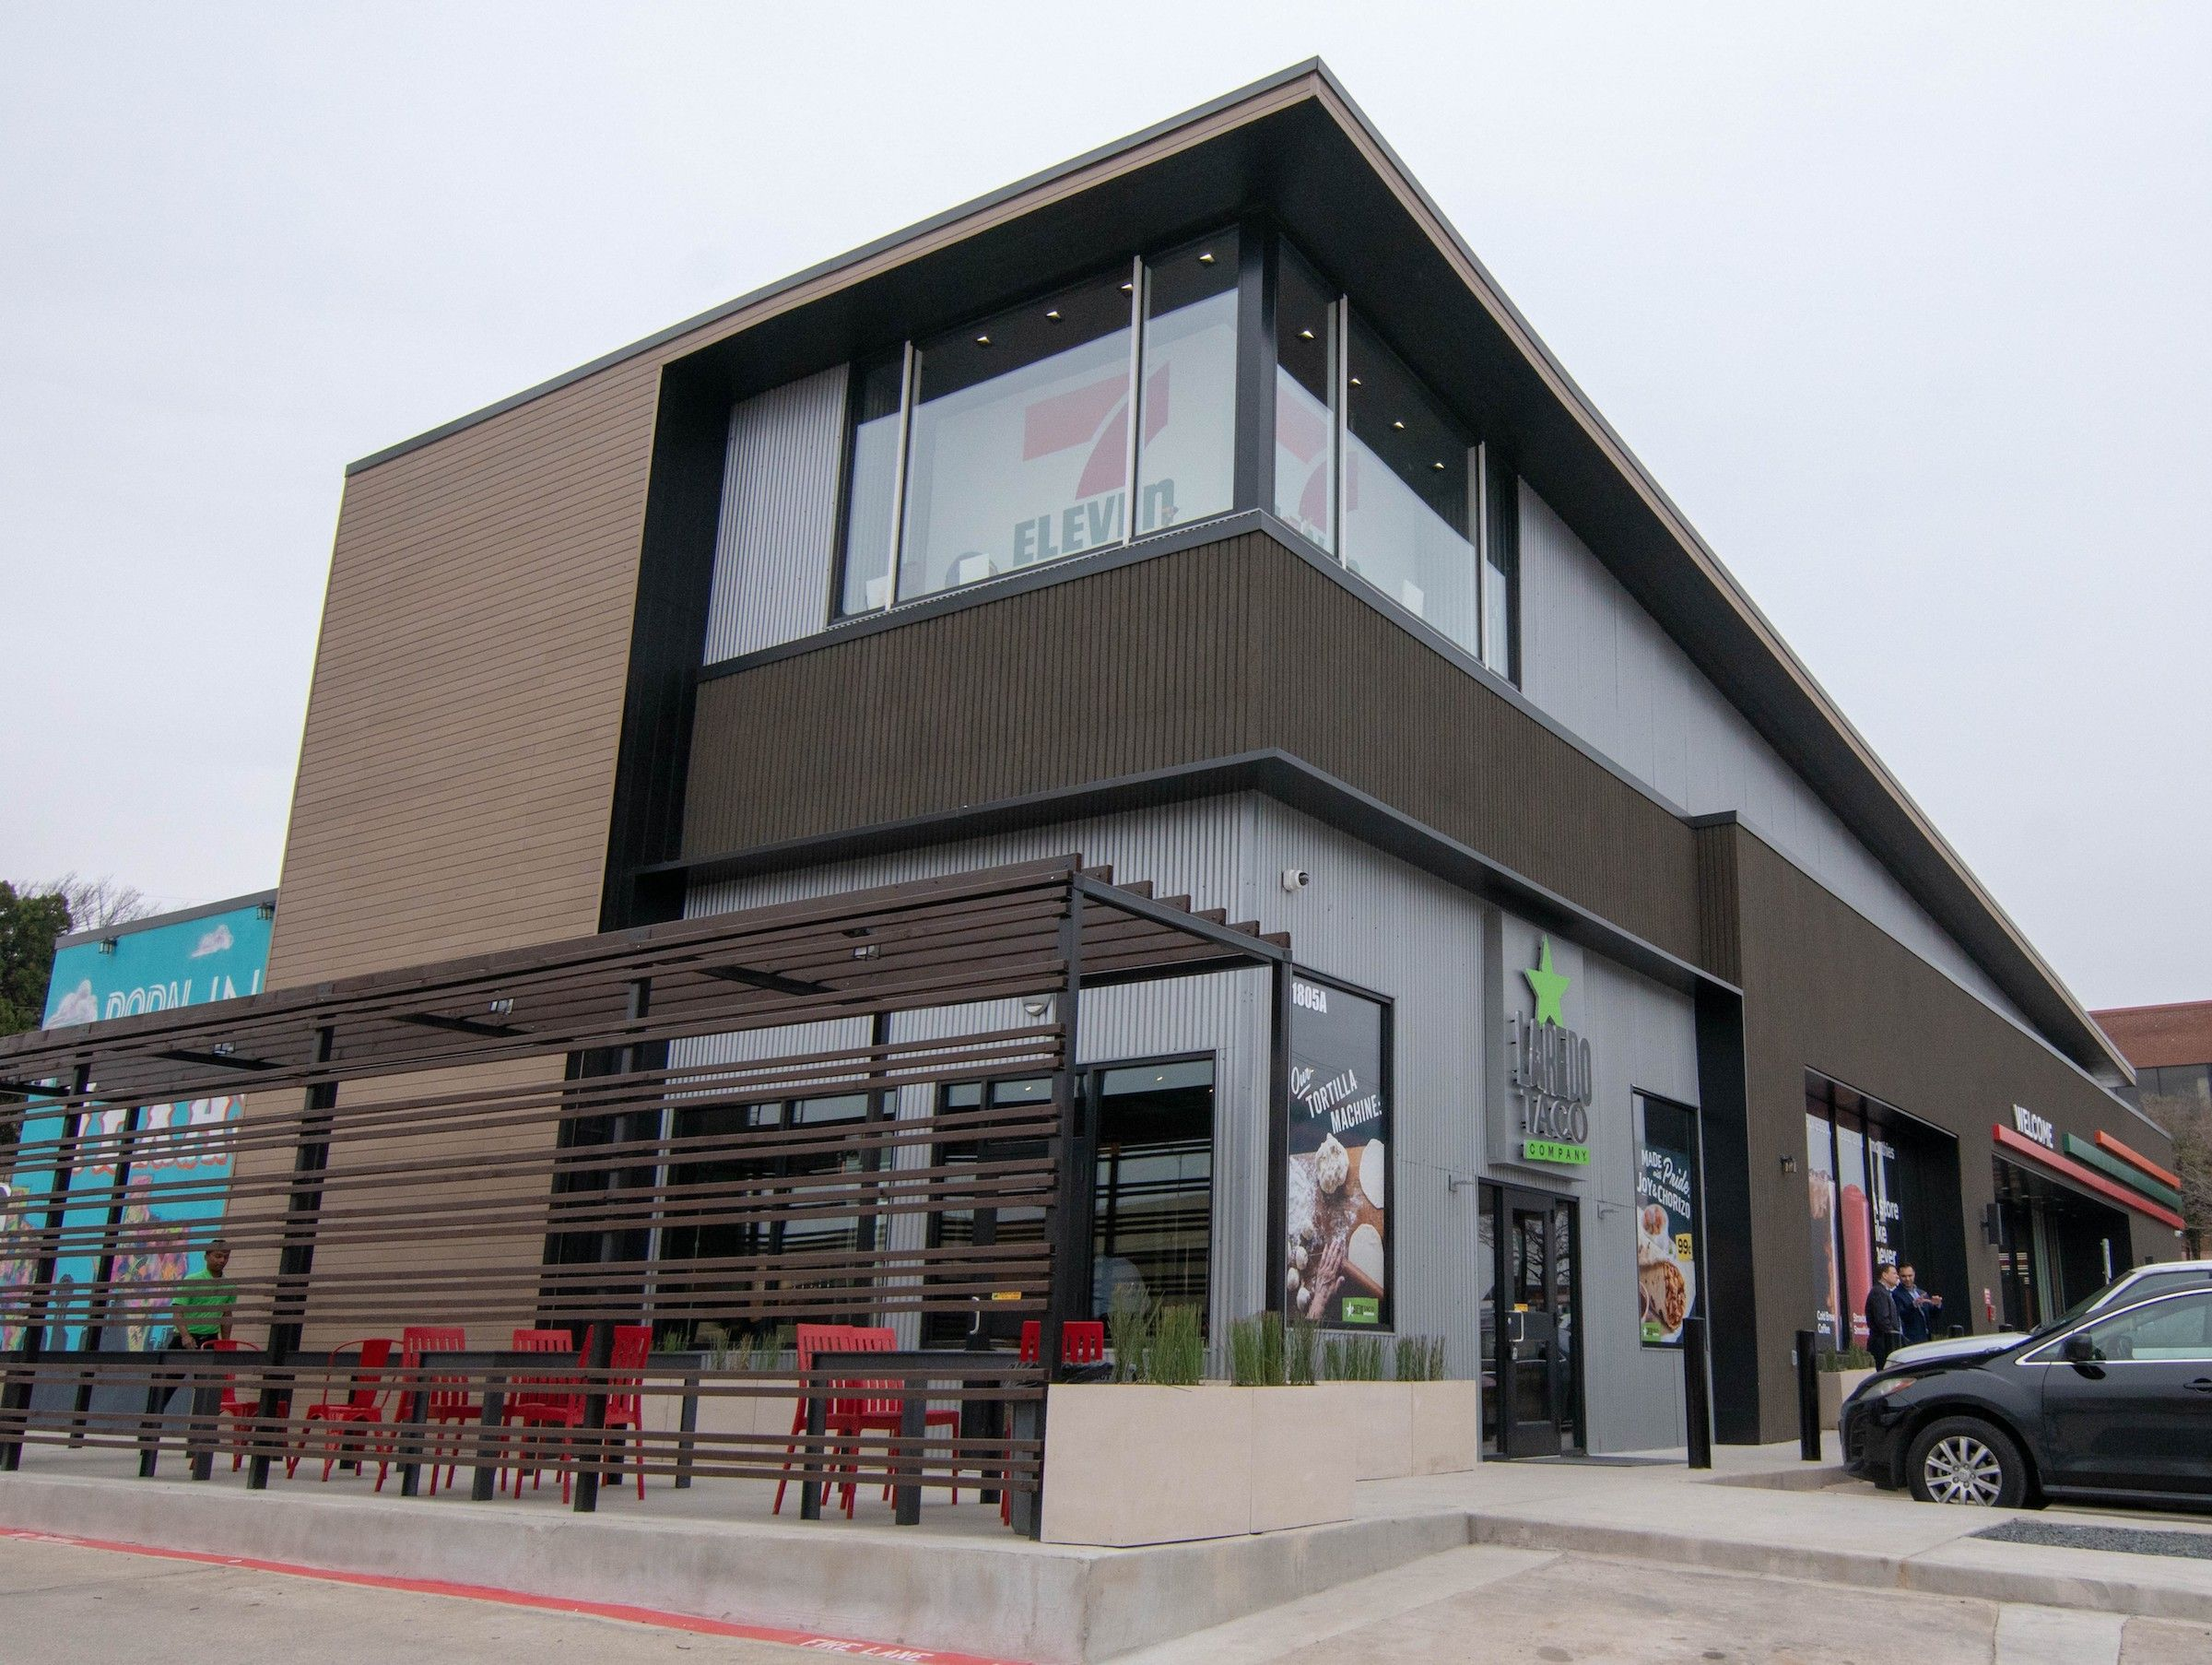 Update 7 Eleven Is Going Upscale With Their New Sit Down Restaurant